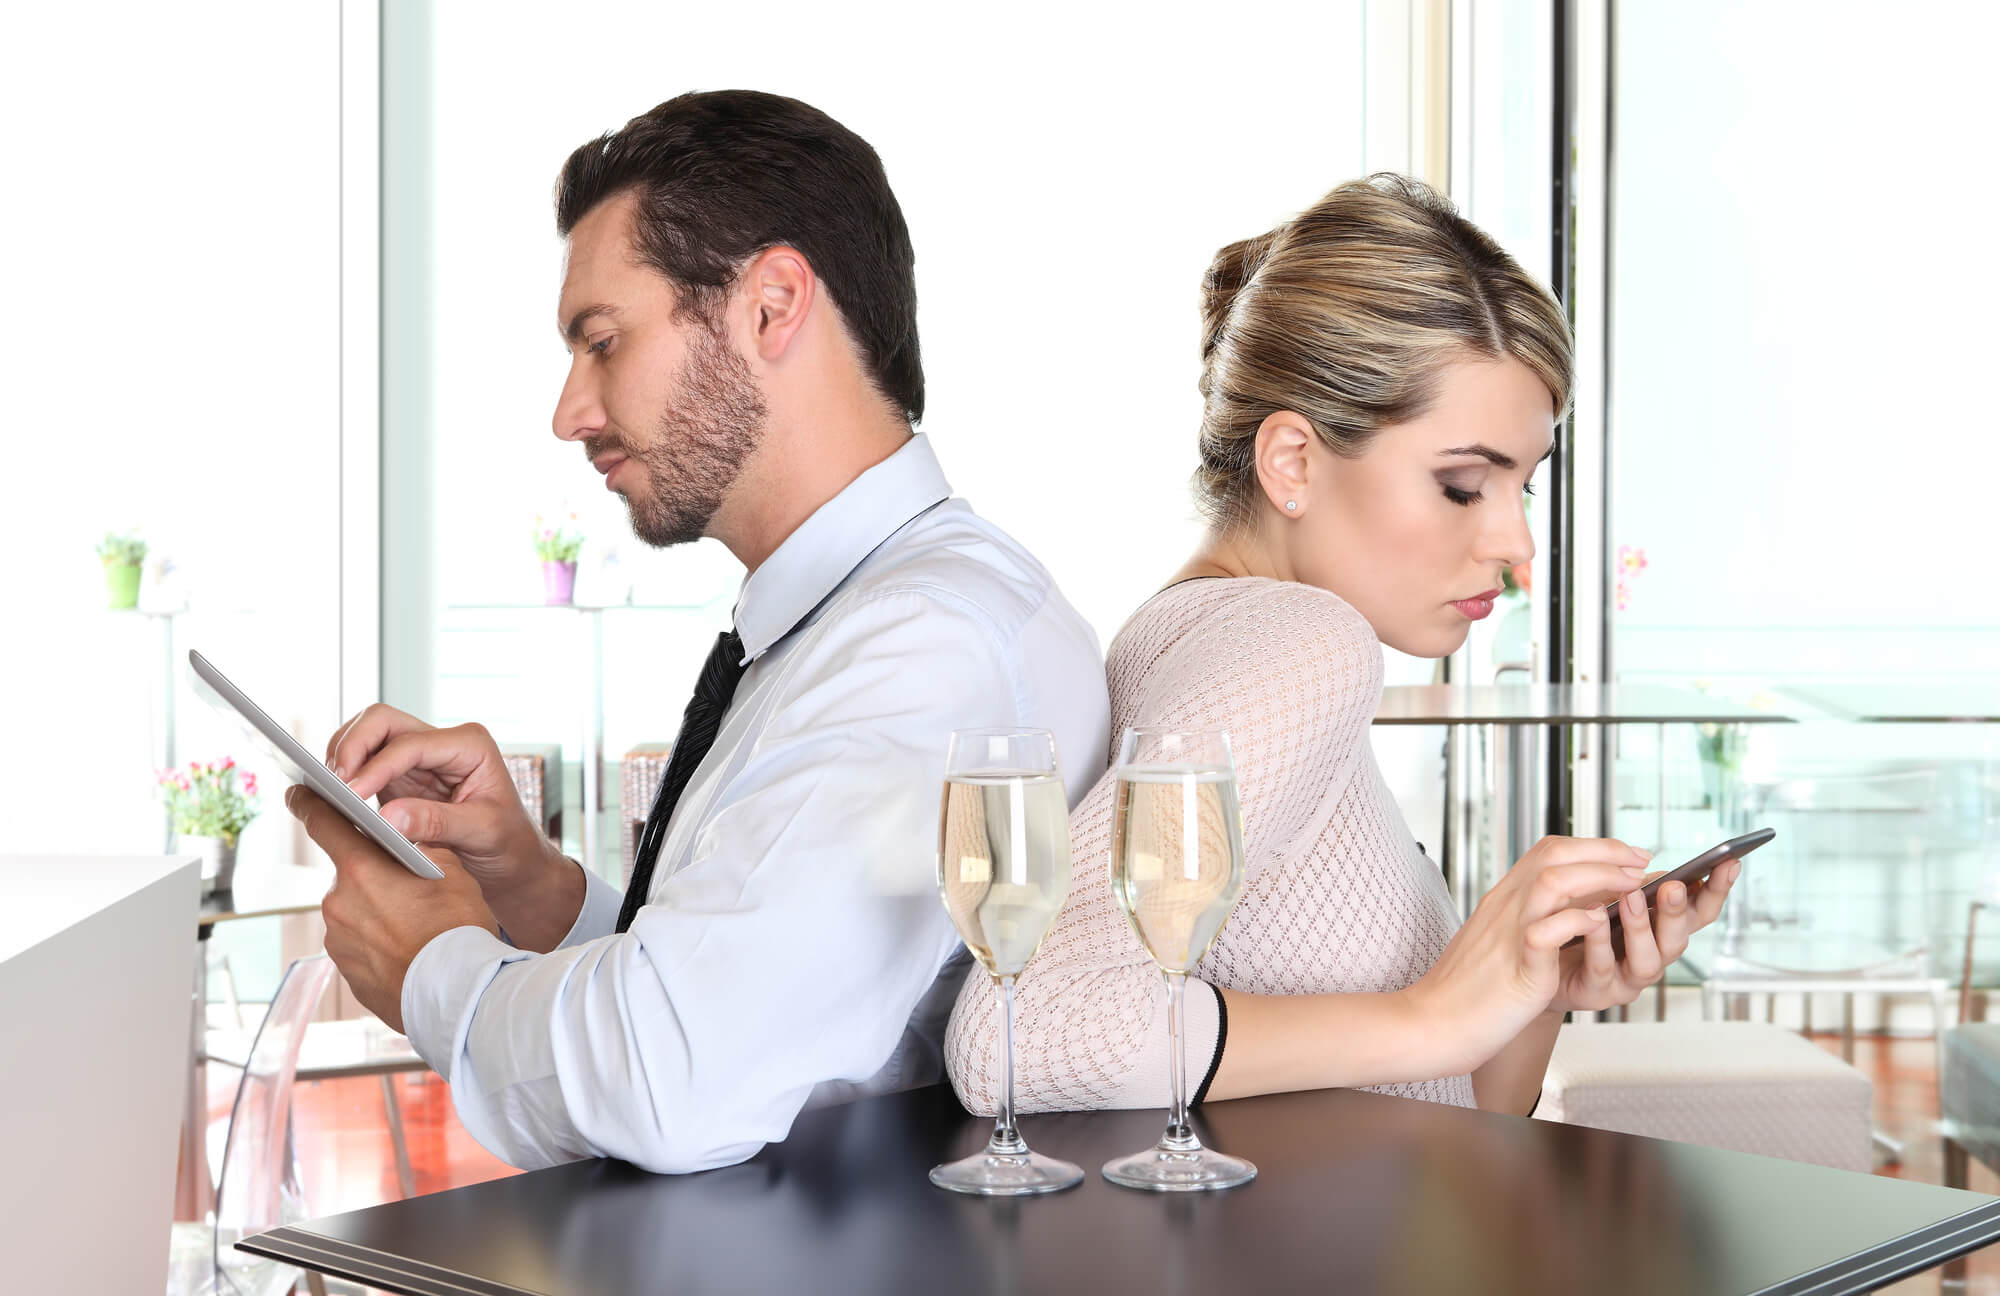 Couple back to back at bar